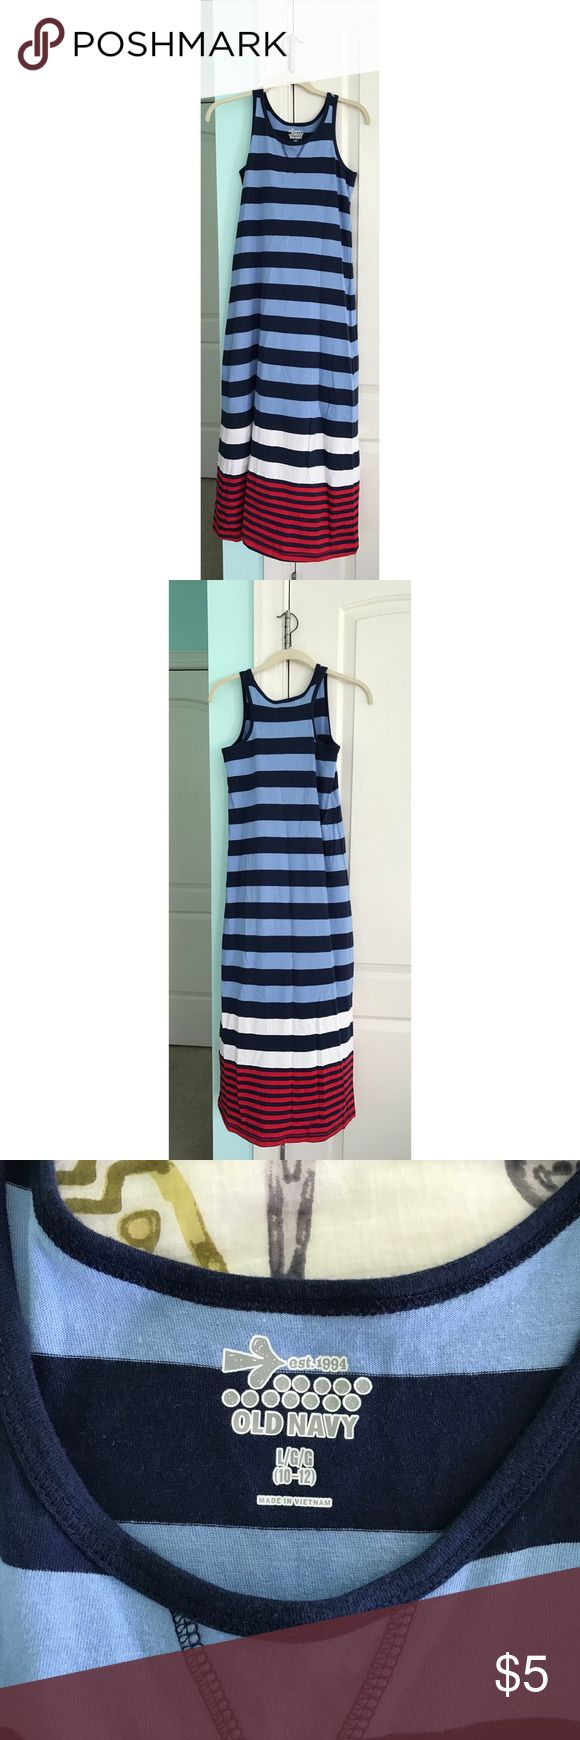 Old Navy Kids Maxi Dress Super cute maxi dress! Perfect for warm weather! Old Navy Dresses Casual